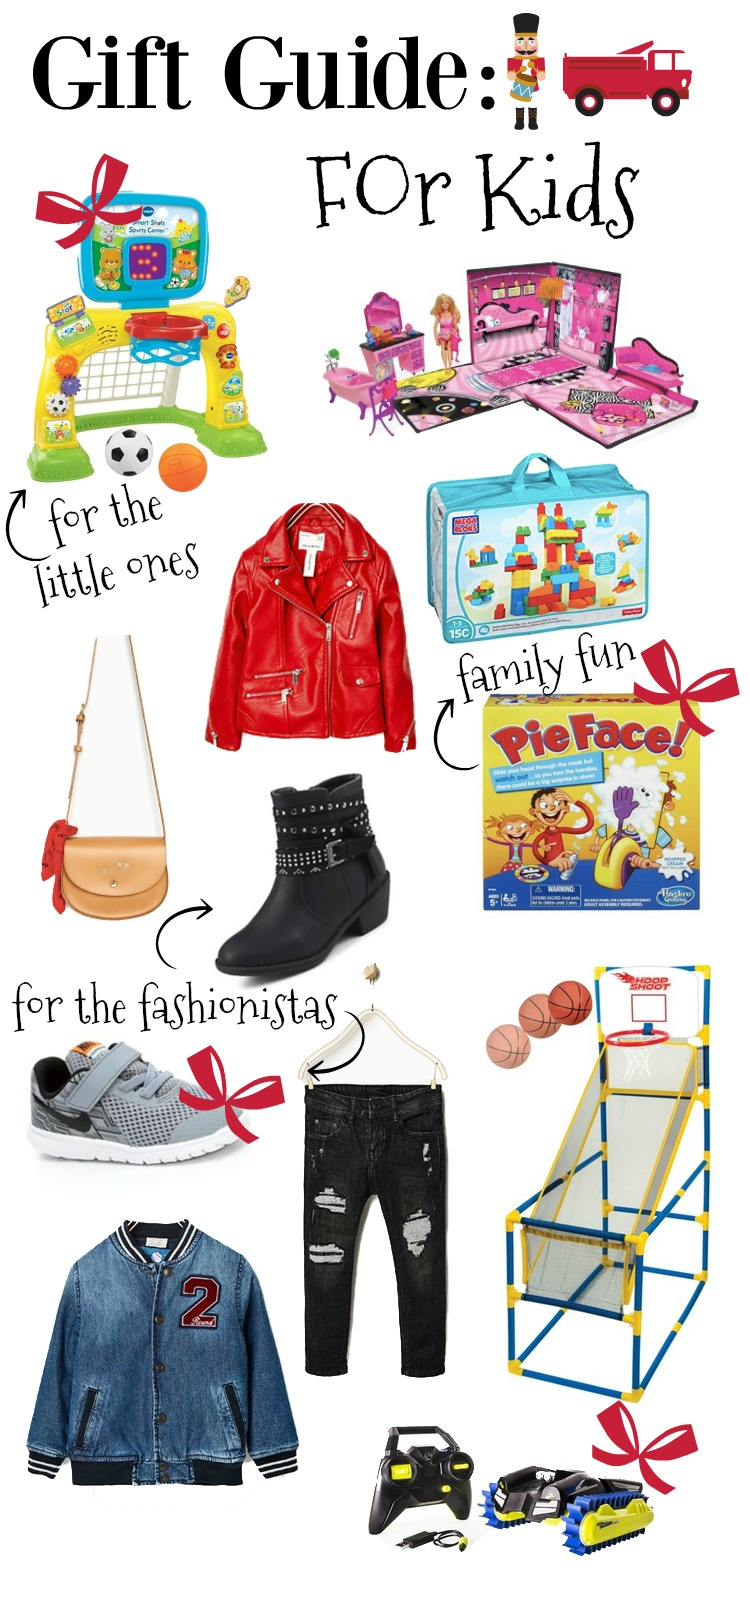 Holiday gift ideas | Gift idea for kids | Gift guide for the kids | Uptown with Elly Brown